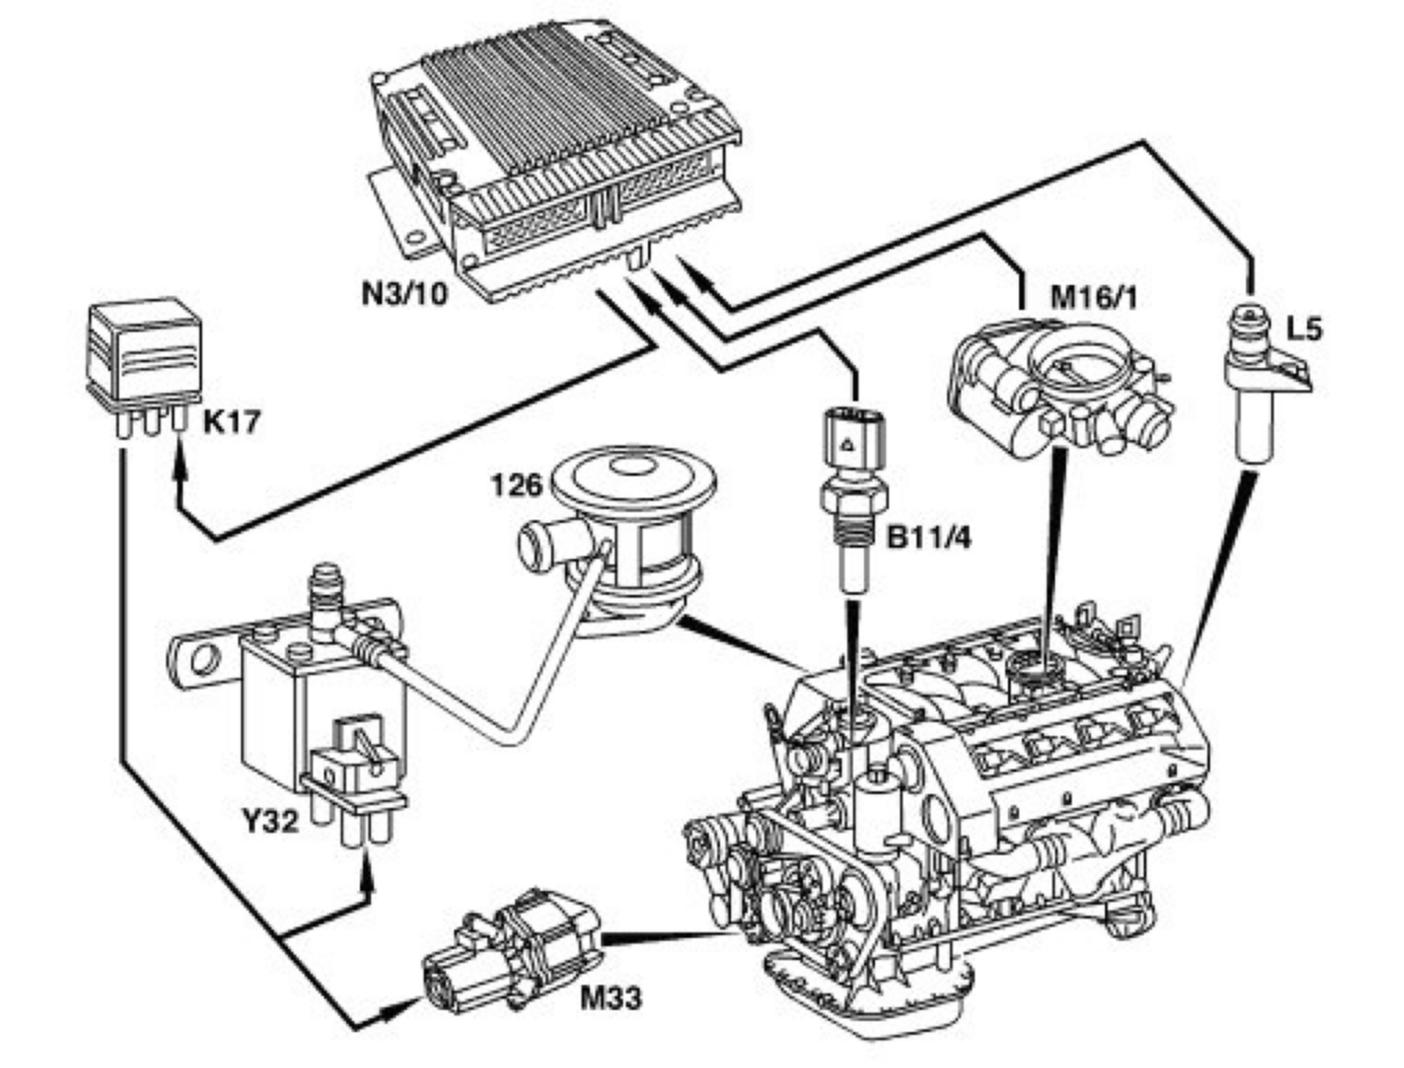 96 Camaro 3 8 Engine Diagram likewise 2007 Pontiac Grand Prix Fuse Box Diagram in addition 2001 Lincoln Ls Fuse Box Diagram also 1985 Chevy Truck Wiring Diagram Windshield Wipers together with 3bmup 95 Buick Lesabre Power Locks Stopped Working Overnight. on 1999 corvette fuse box diagram